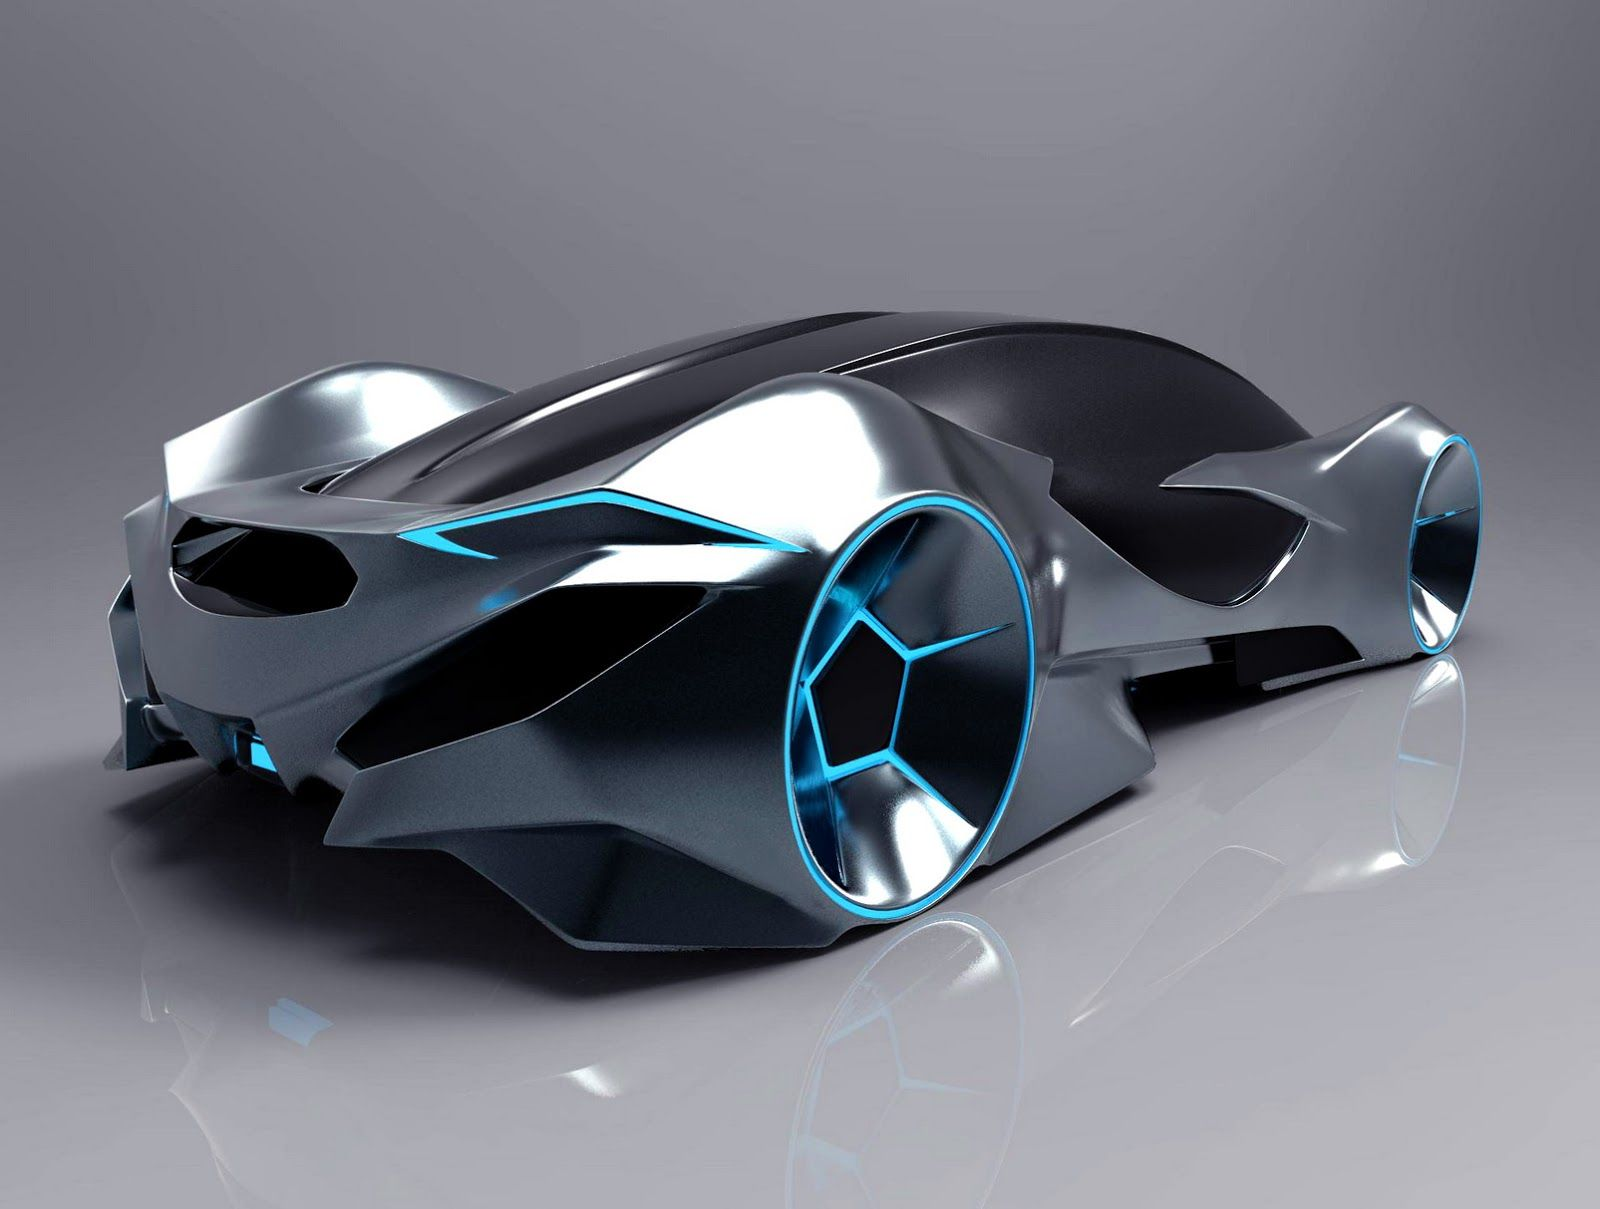 Dino concept is a sporty electric car for future generations.